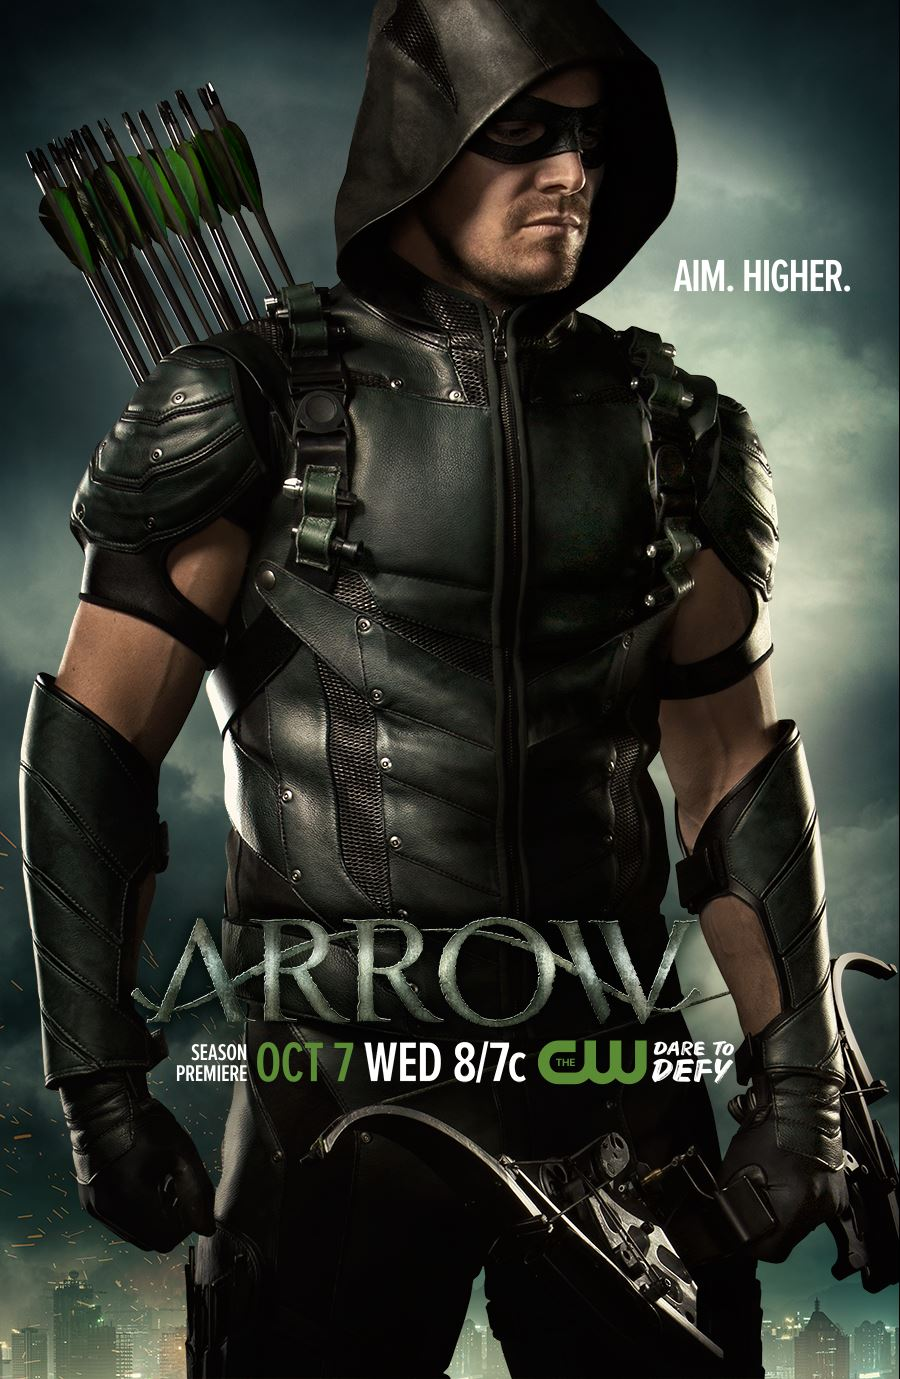 ARROW Season 4 Poster